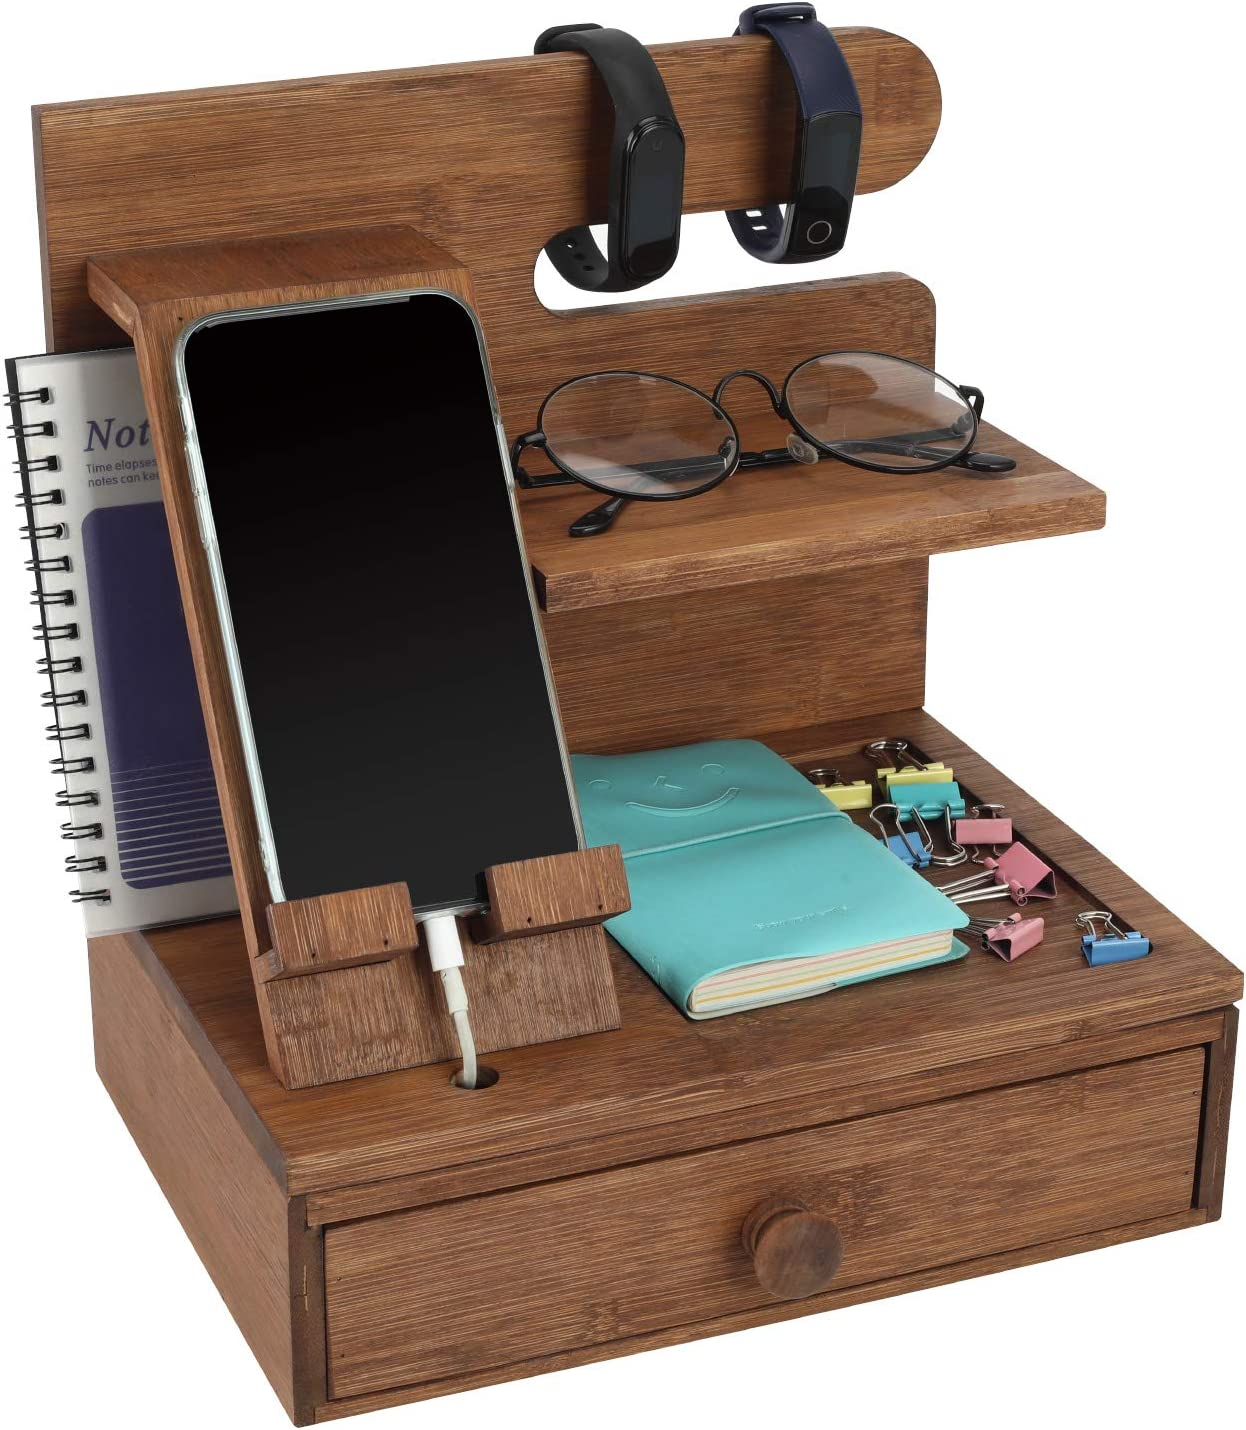 TQVAI Bamboo Desktop Phone Docking Station with Drawer Home & Office Wallet Stand Glasses Holder Watch Organizer for Men, Husband, Daddy Gift, Retro Brown